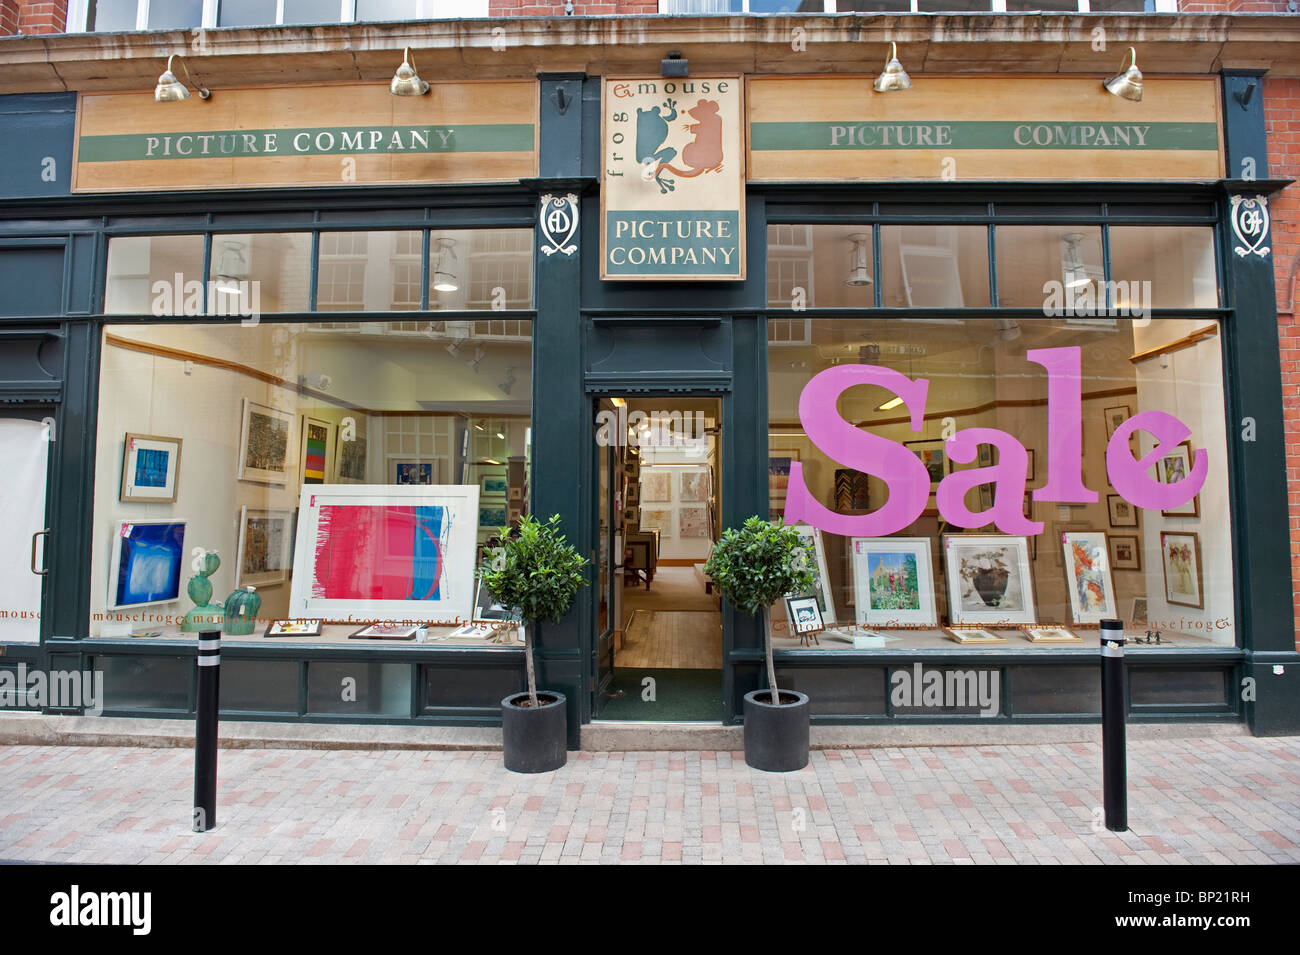 The Frog & Mouse Picture Framers shop front in Leicester City. Pink sale sign in window - Stock Image